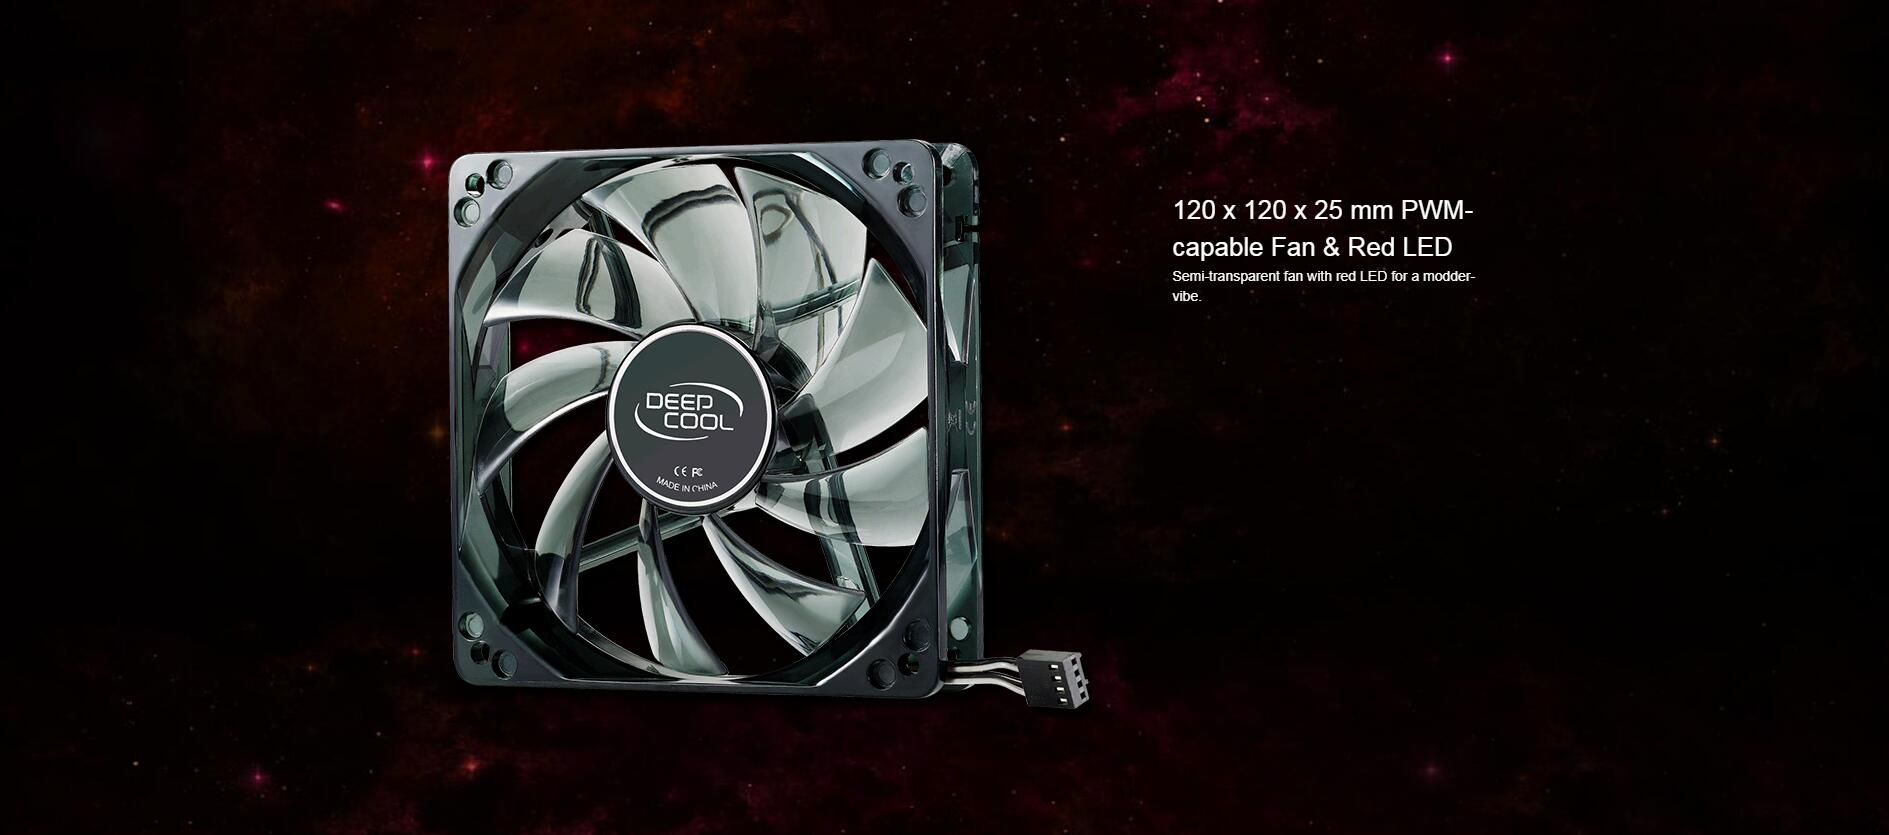 Deepcool Gammaxx 400 Red Cpu Cooler Ordinateurs Canada 200t Processor Semi Transparent Fan With Led For A Modder Vibe Can Be Easily Installed Without Moving The Motherboard Extra Clips Allow Mounting Of Second